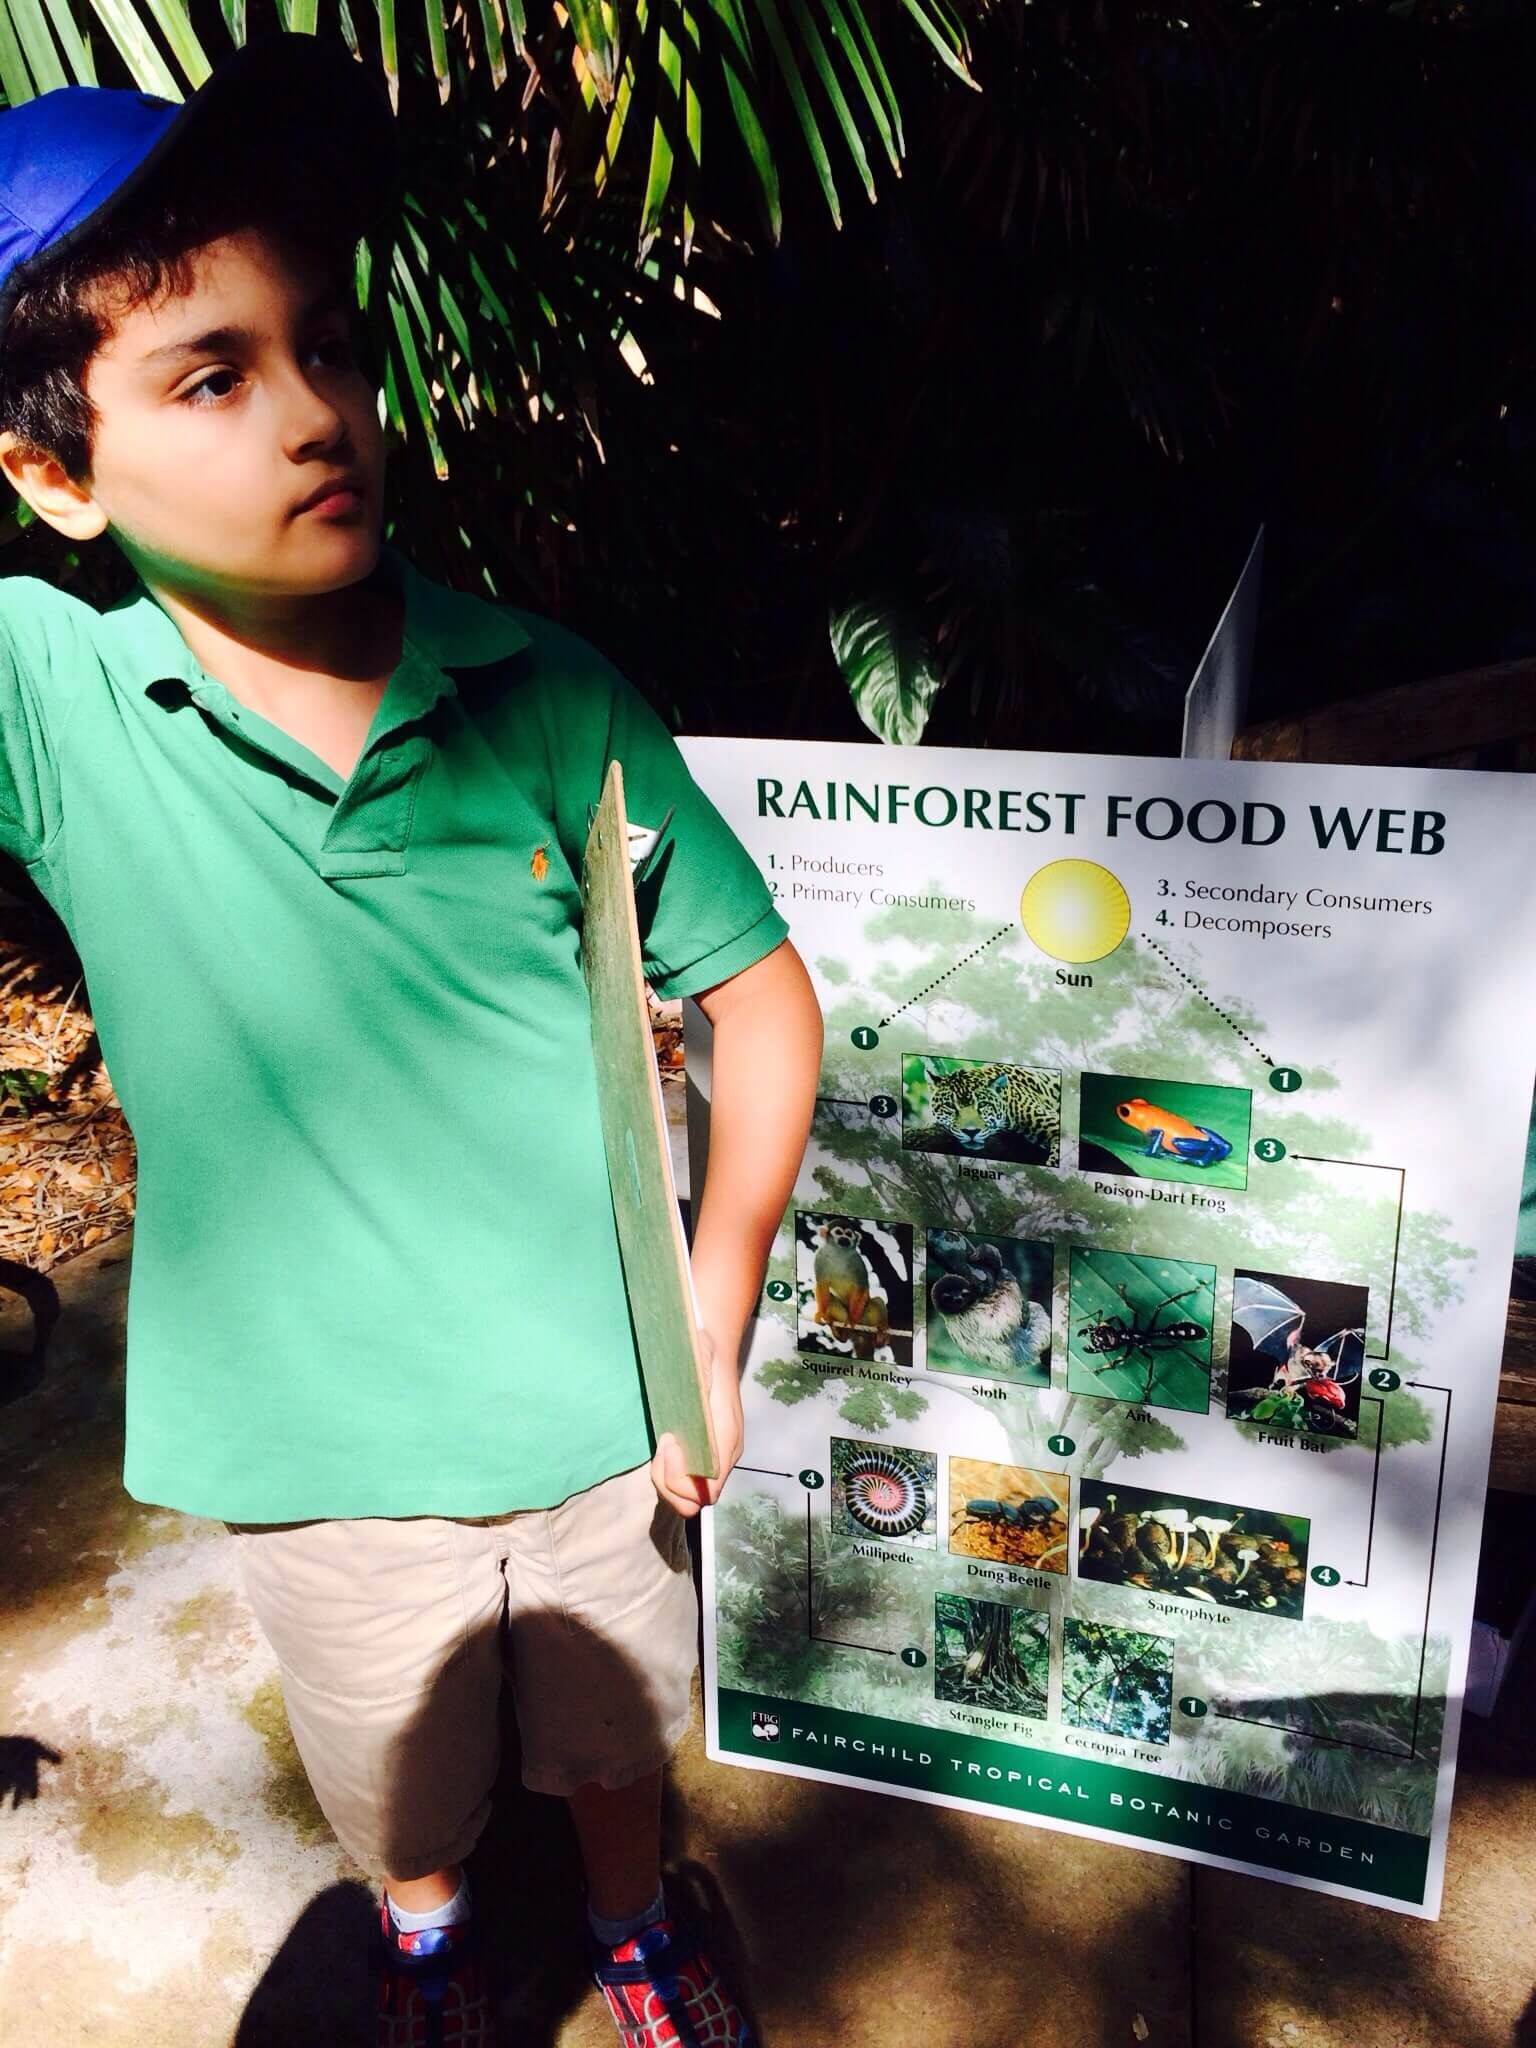 Playing a game to simulate the rainforest food web